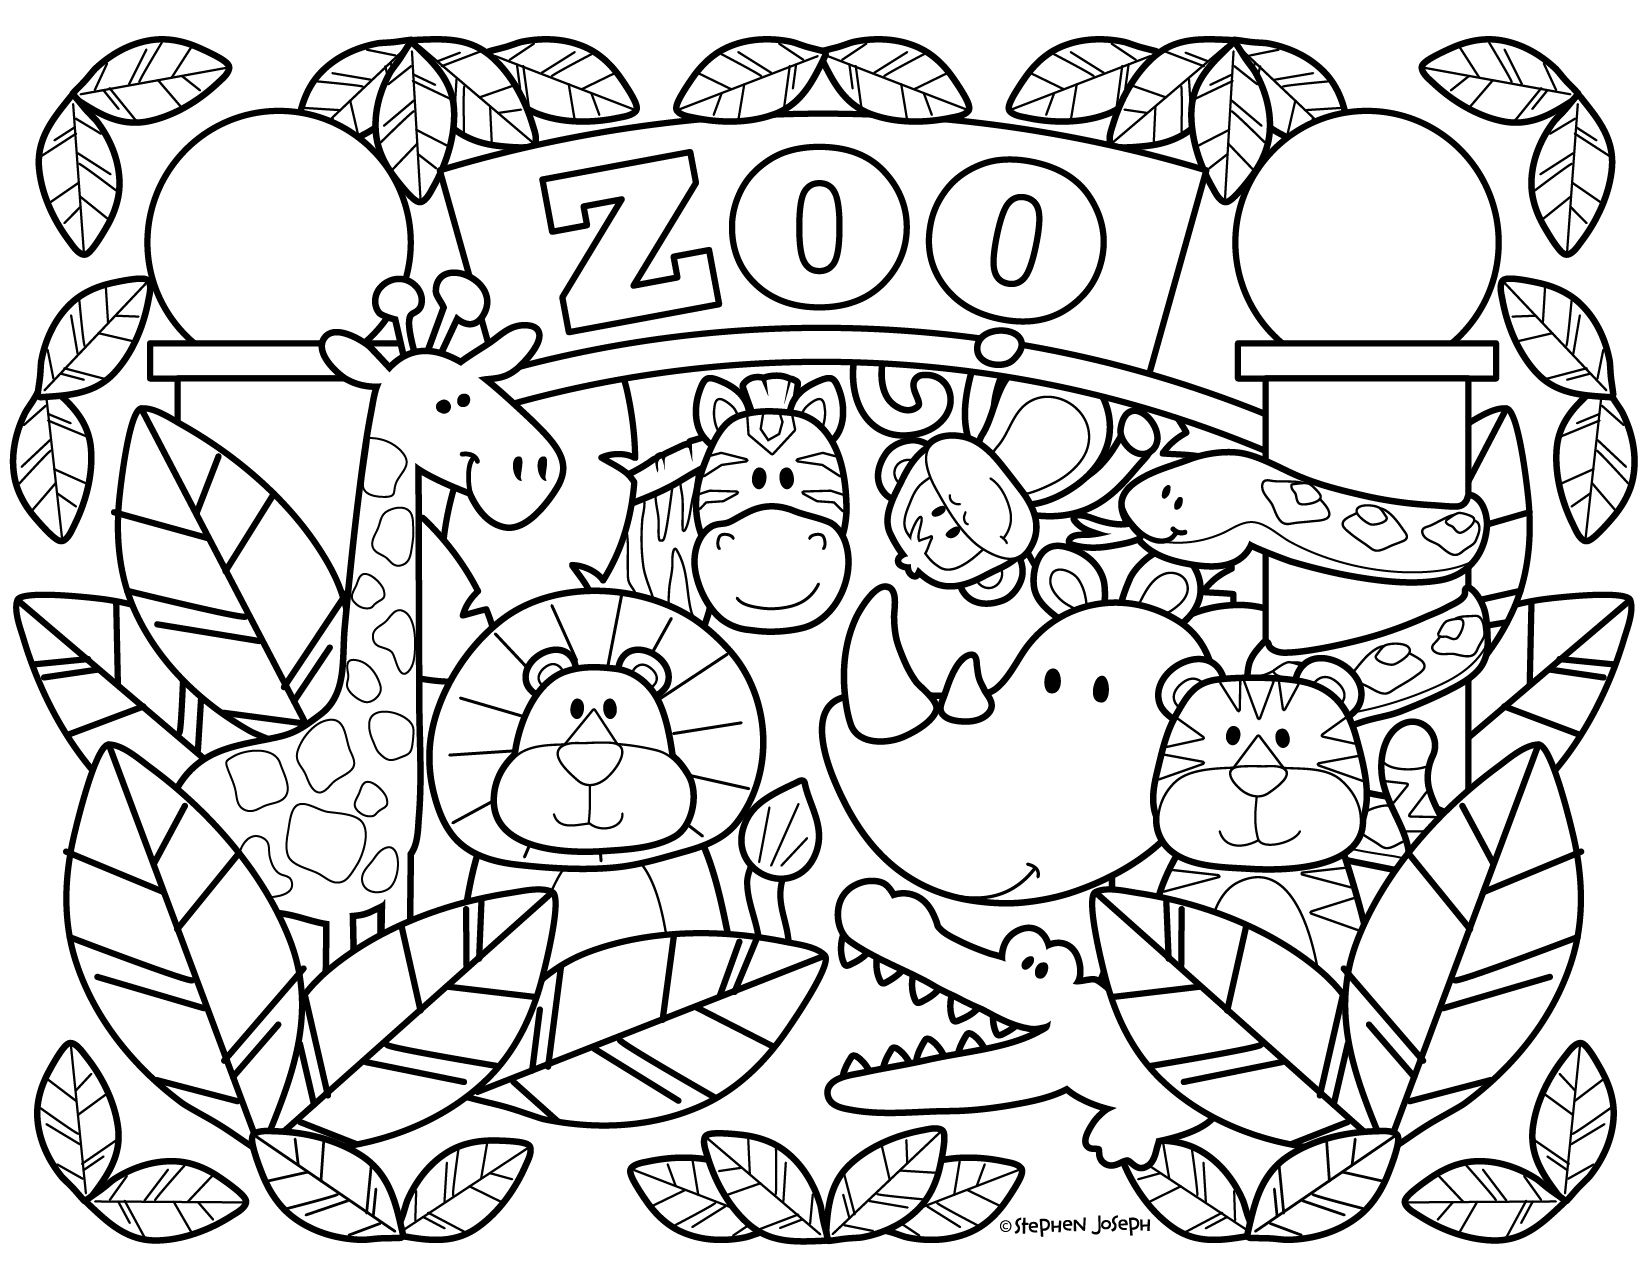 zoo coloring pages printable free by stephen joseph gifts free coloring pages by stephen. Black Bedroom Furniture Sets. Home Design Ideas